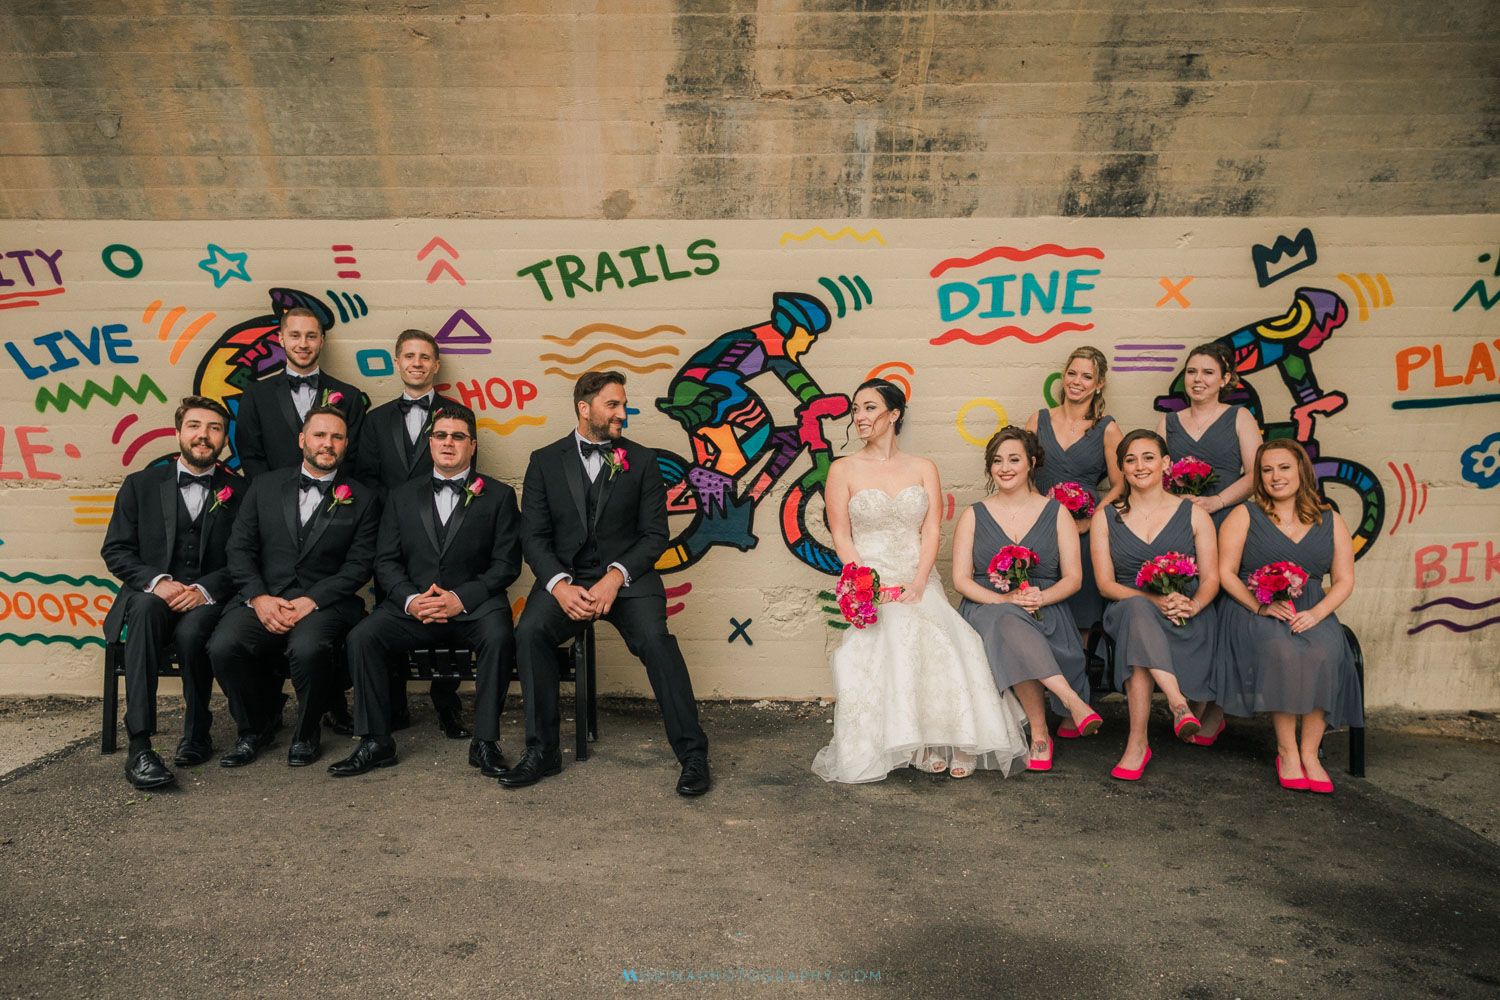 Jill & Rhett Wedding at Artesano Iron Works, Manayunk Philadelphia36.jpg